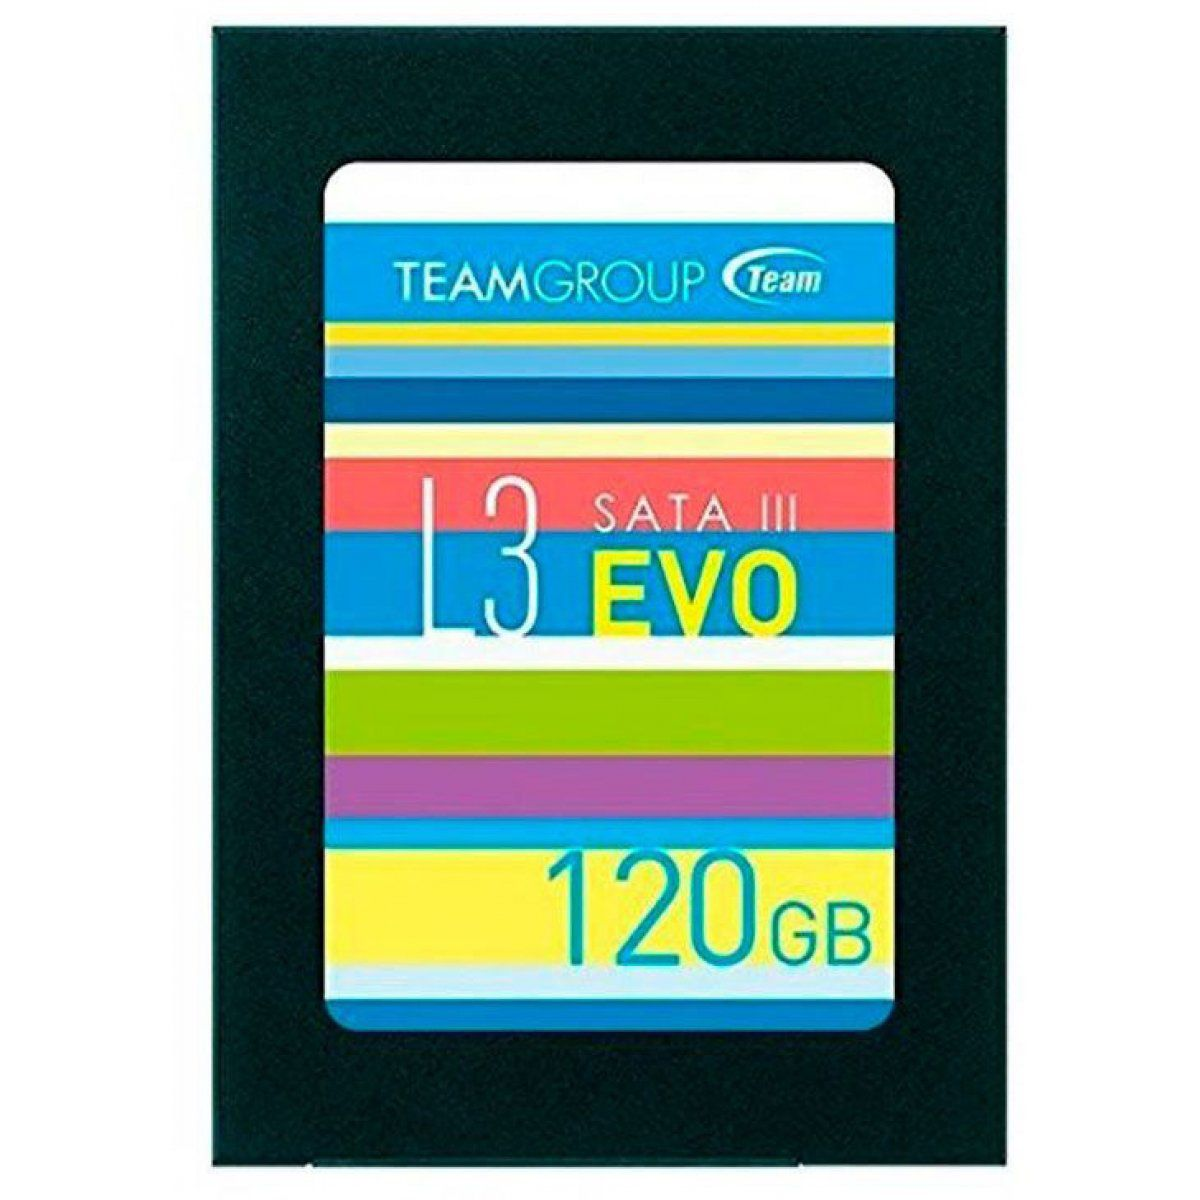 SSD 120GB L3 EVO T253LE120GTC101 SATA III 2.5 - Team Group